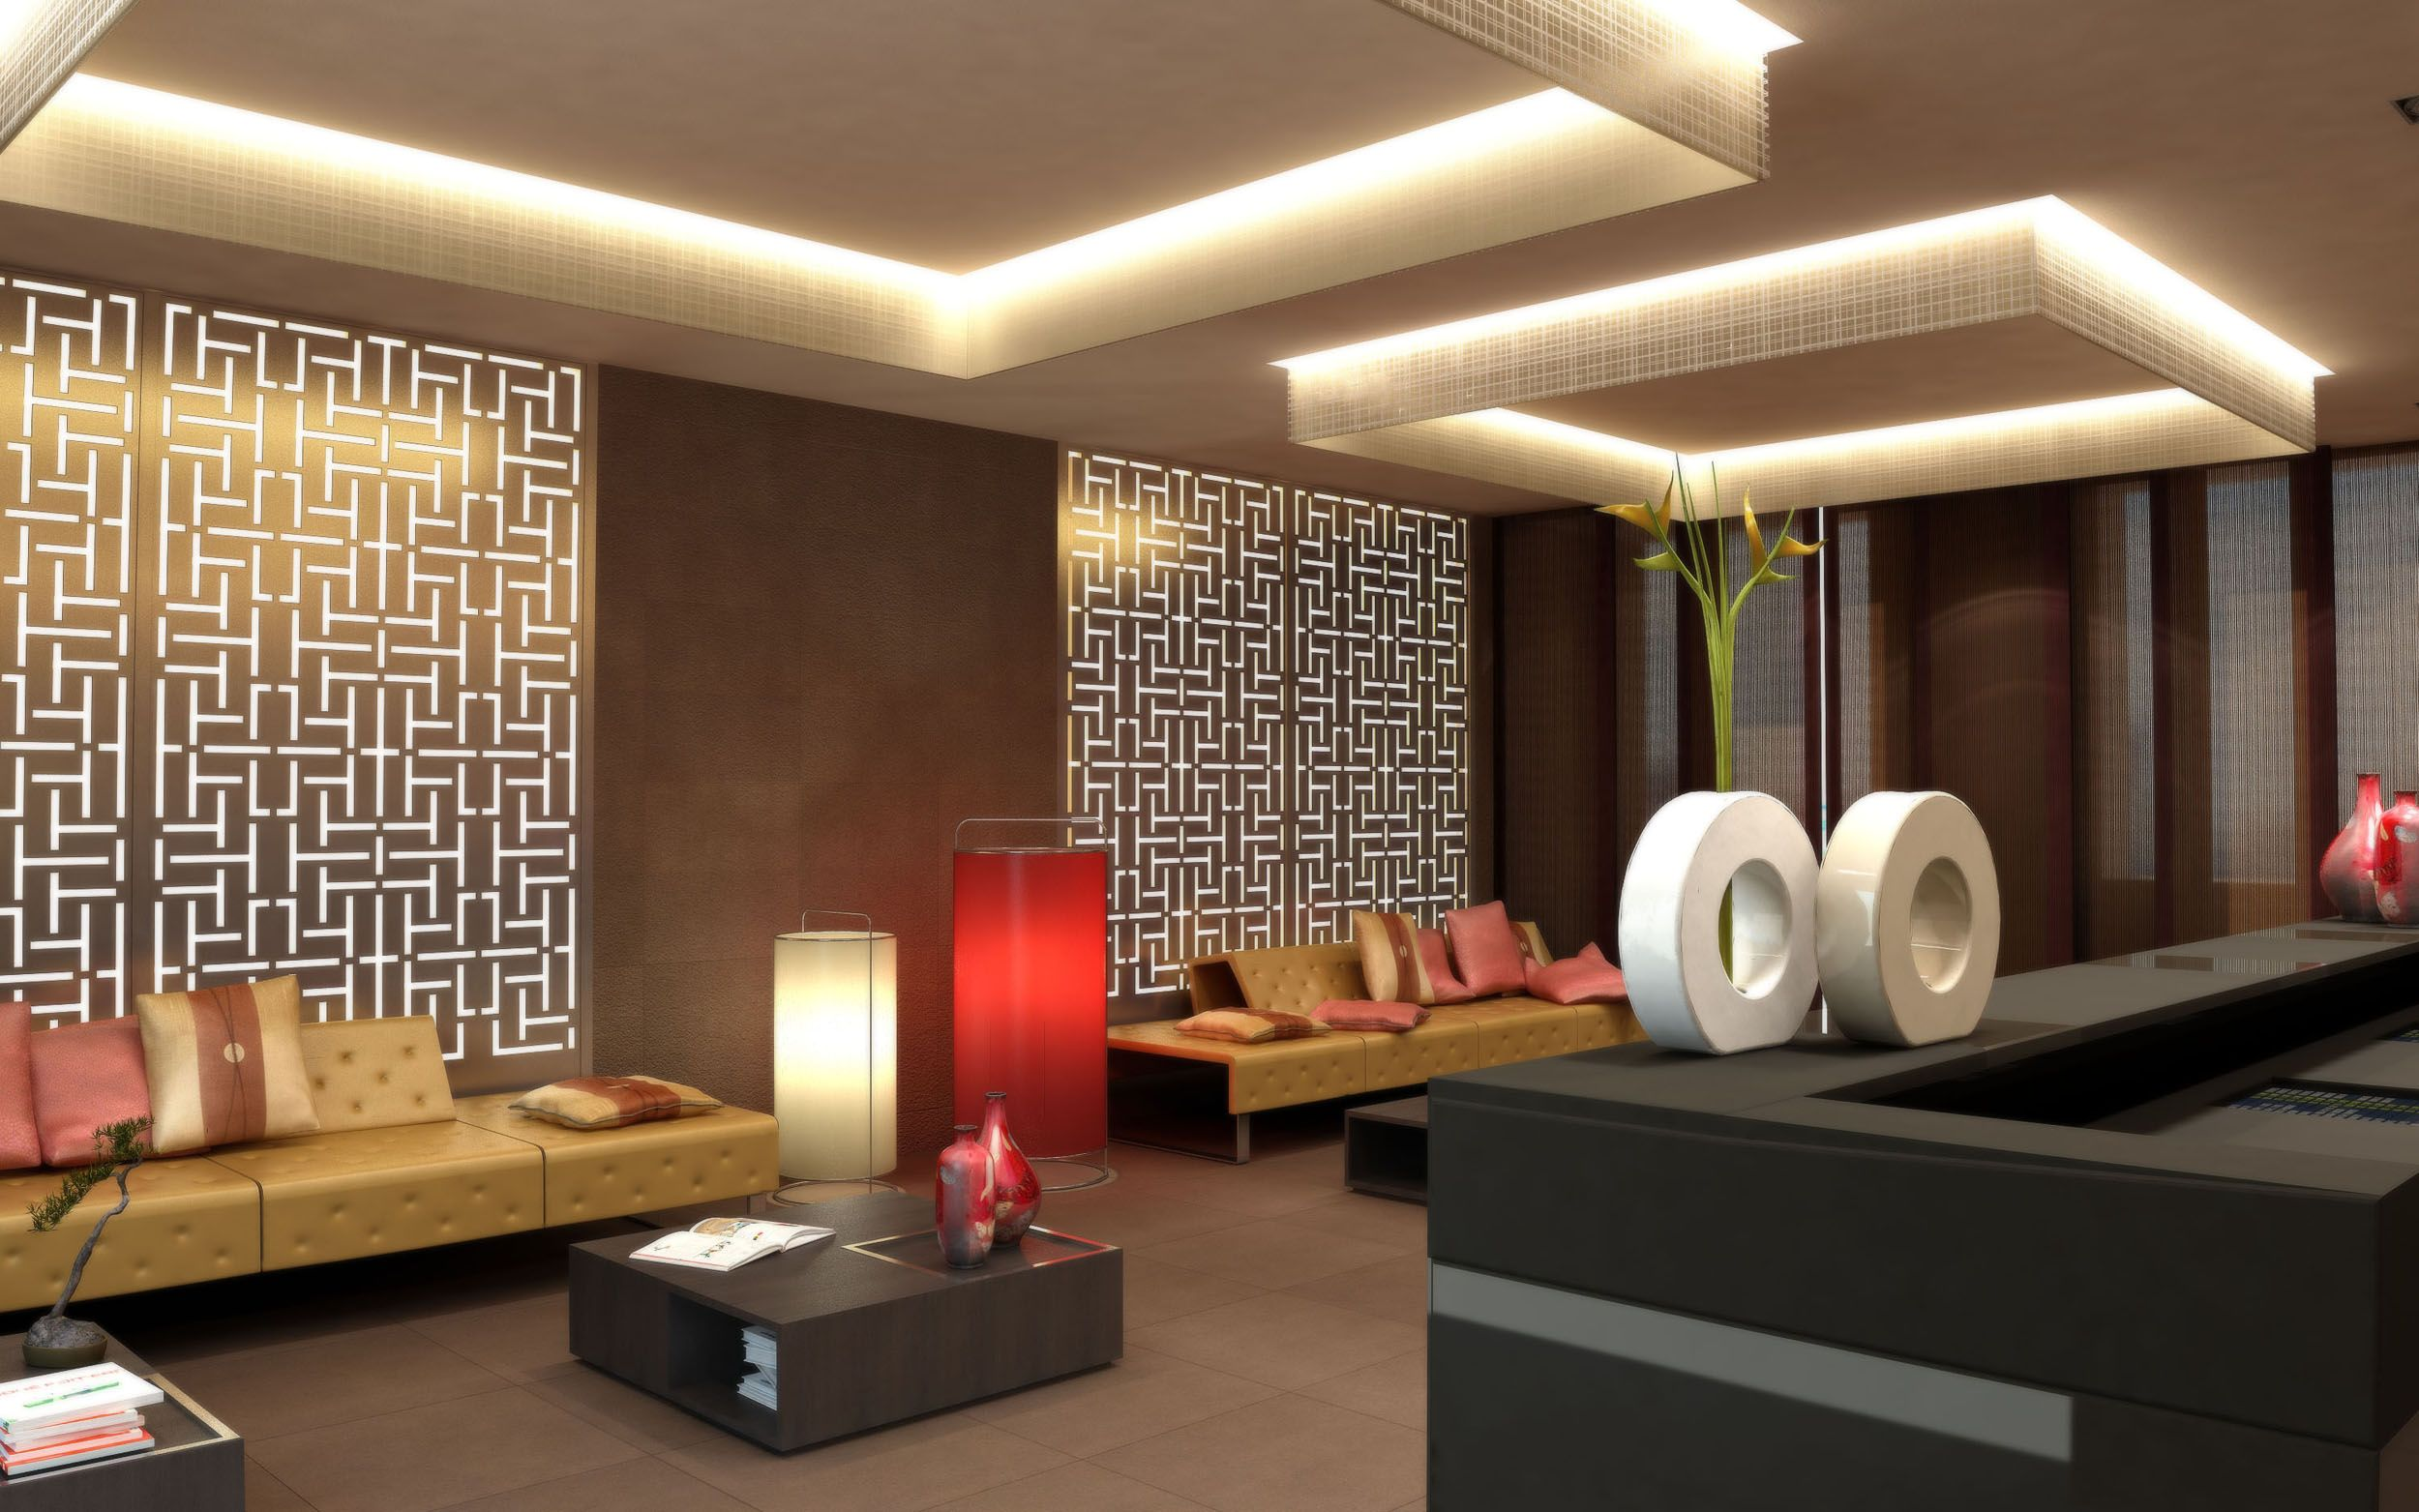 Chinese interior design images chinese interior design for Interior designs com